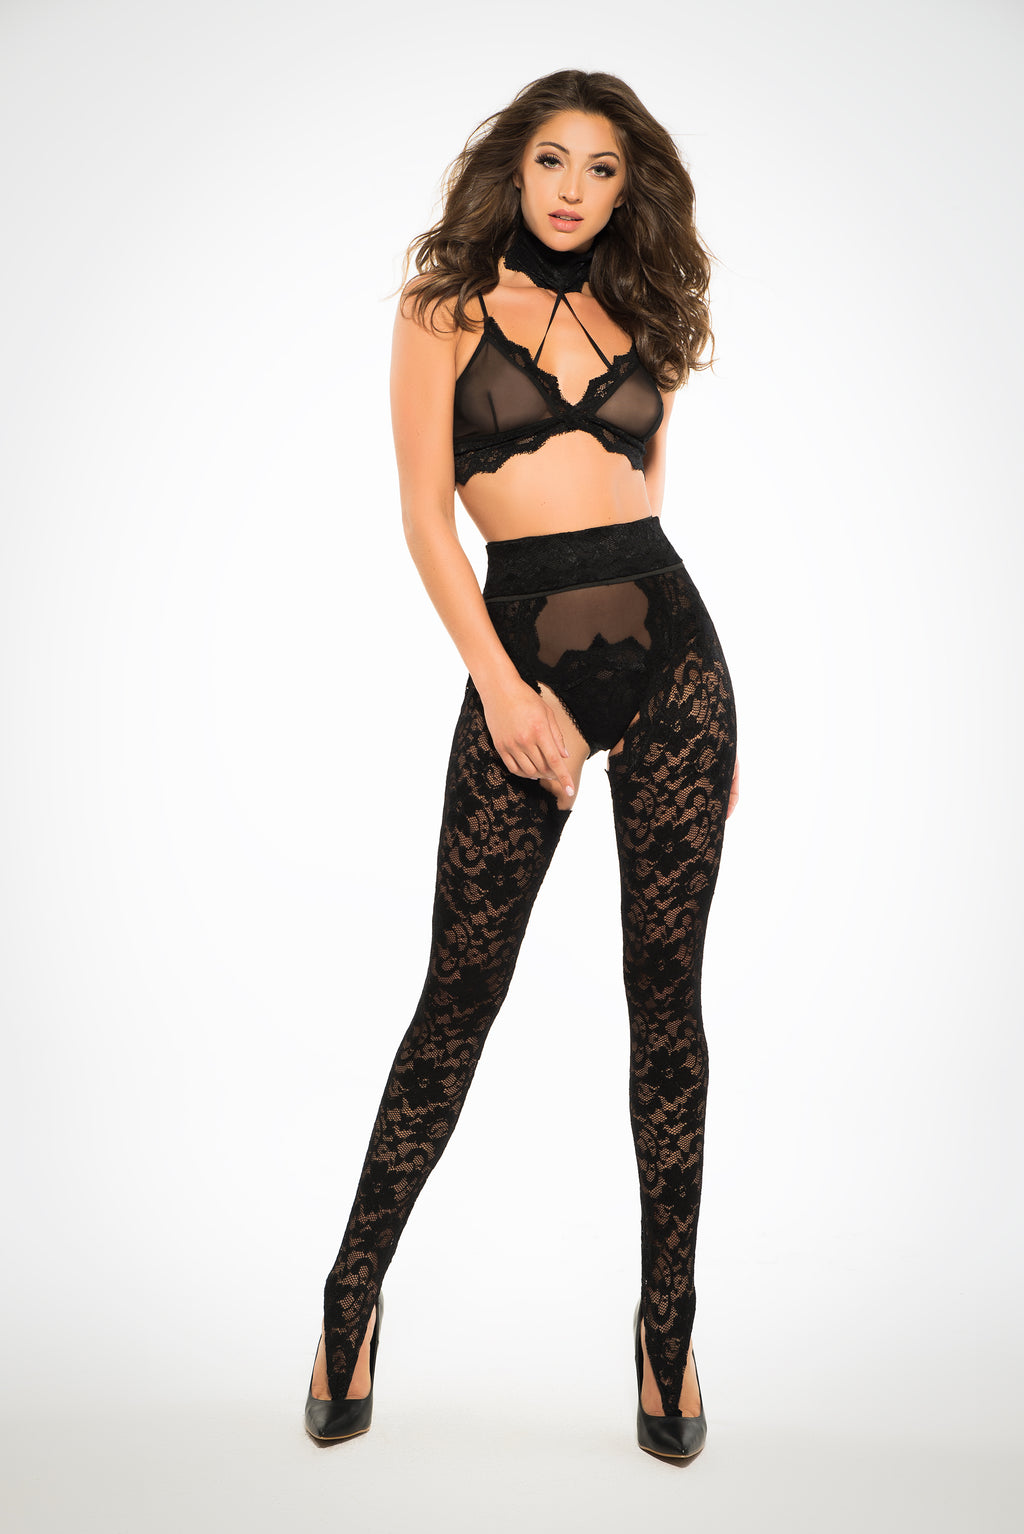 wild lace chaps, panty and bra